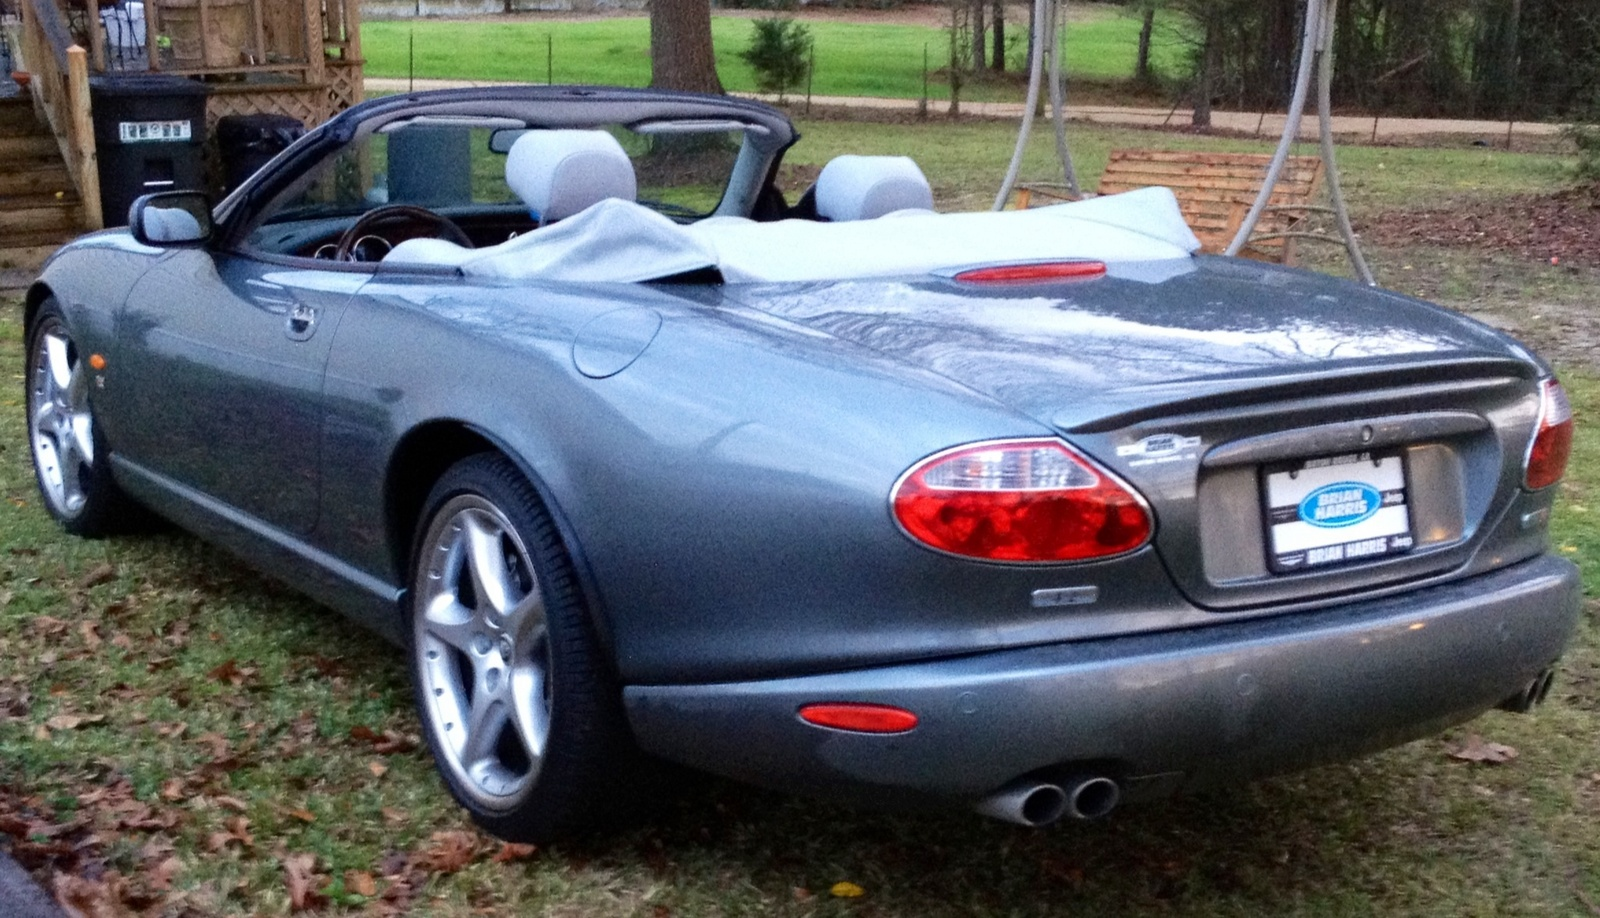 2005 Jaguar XK Series #18 Jaguar XK Series #18